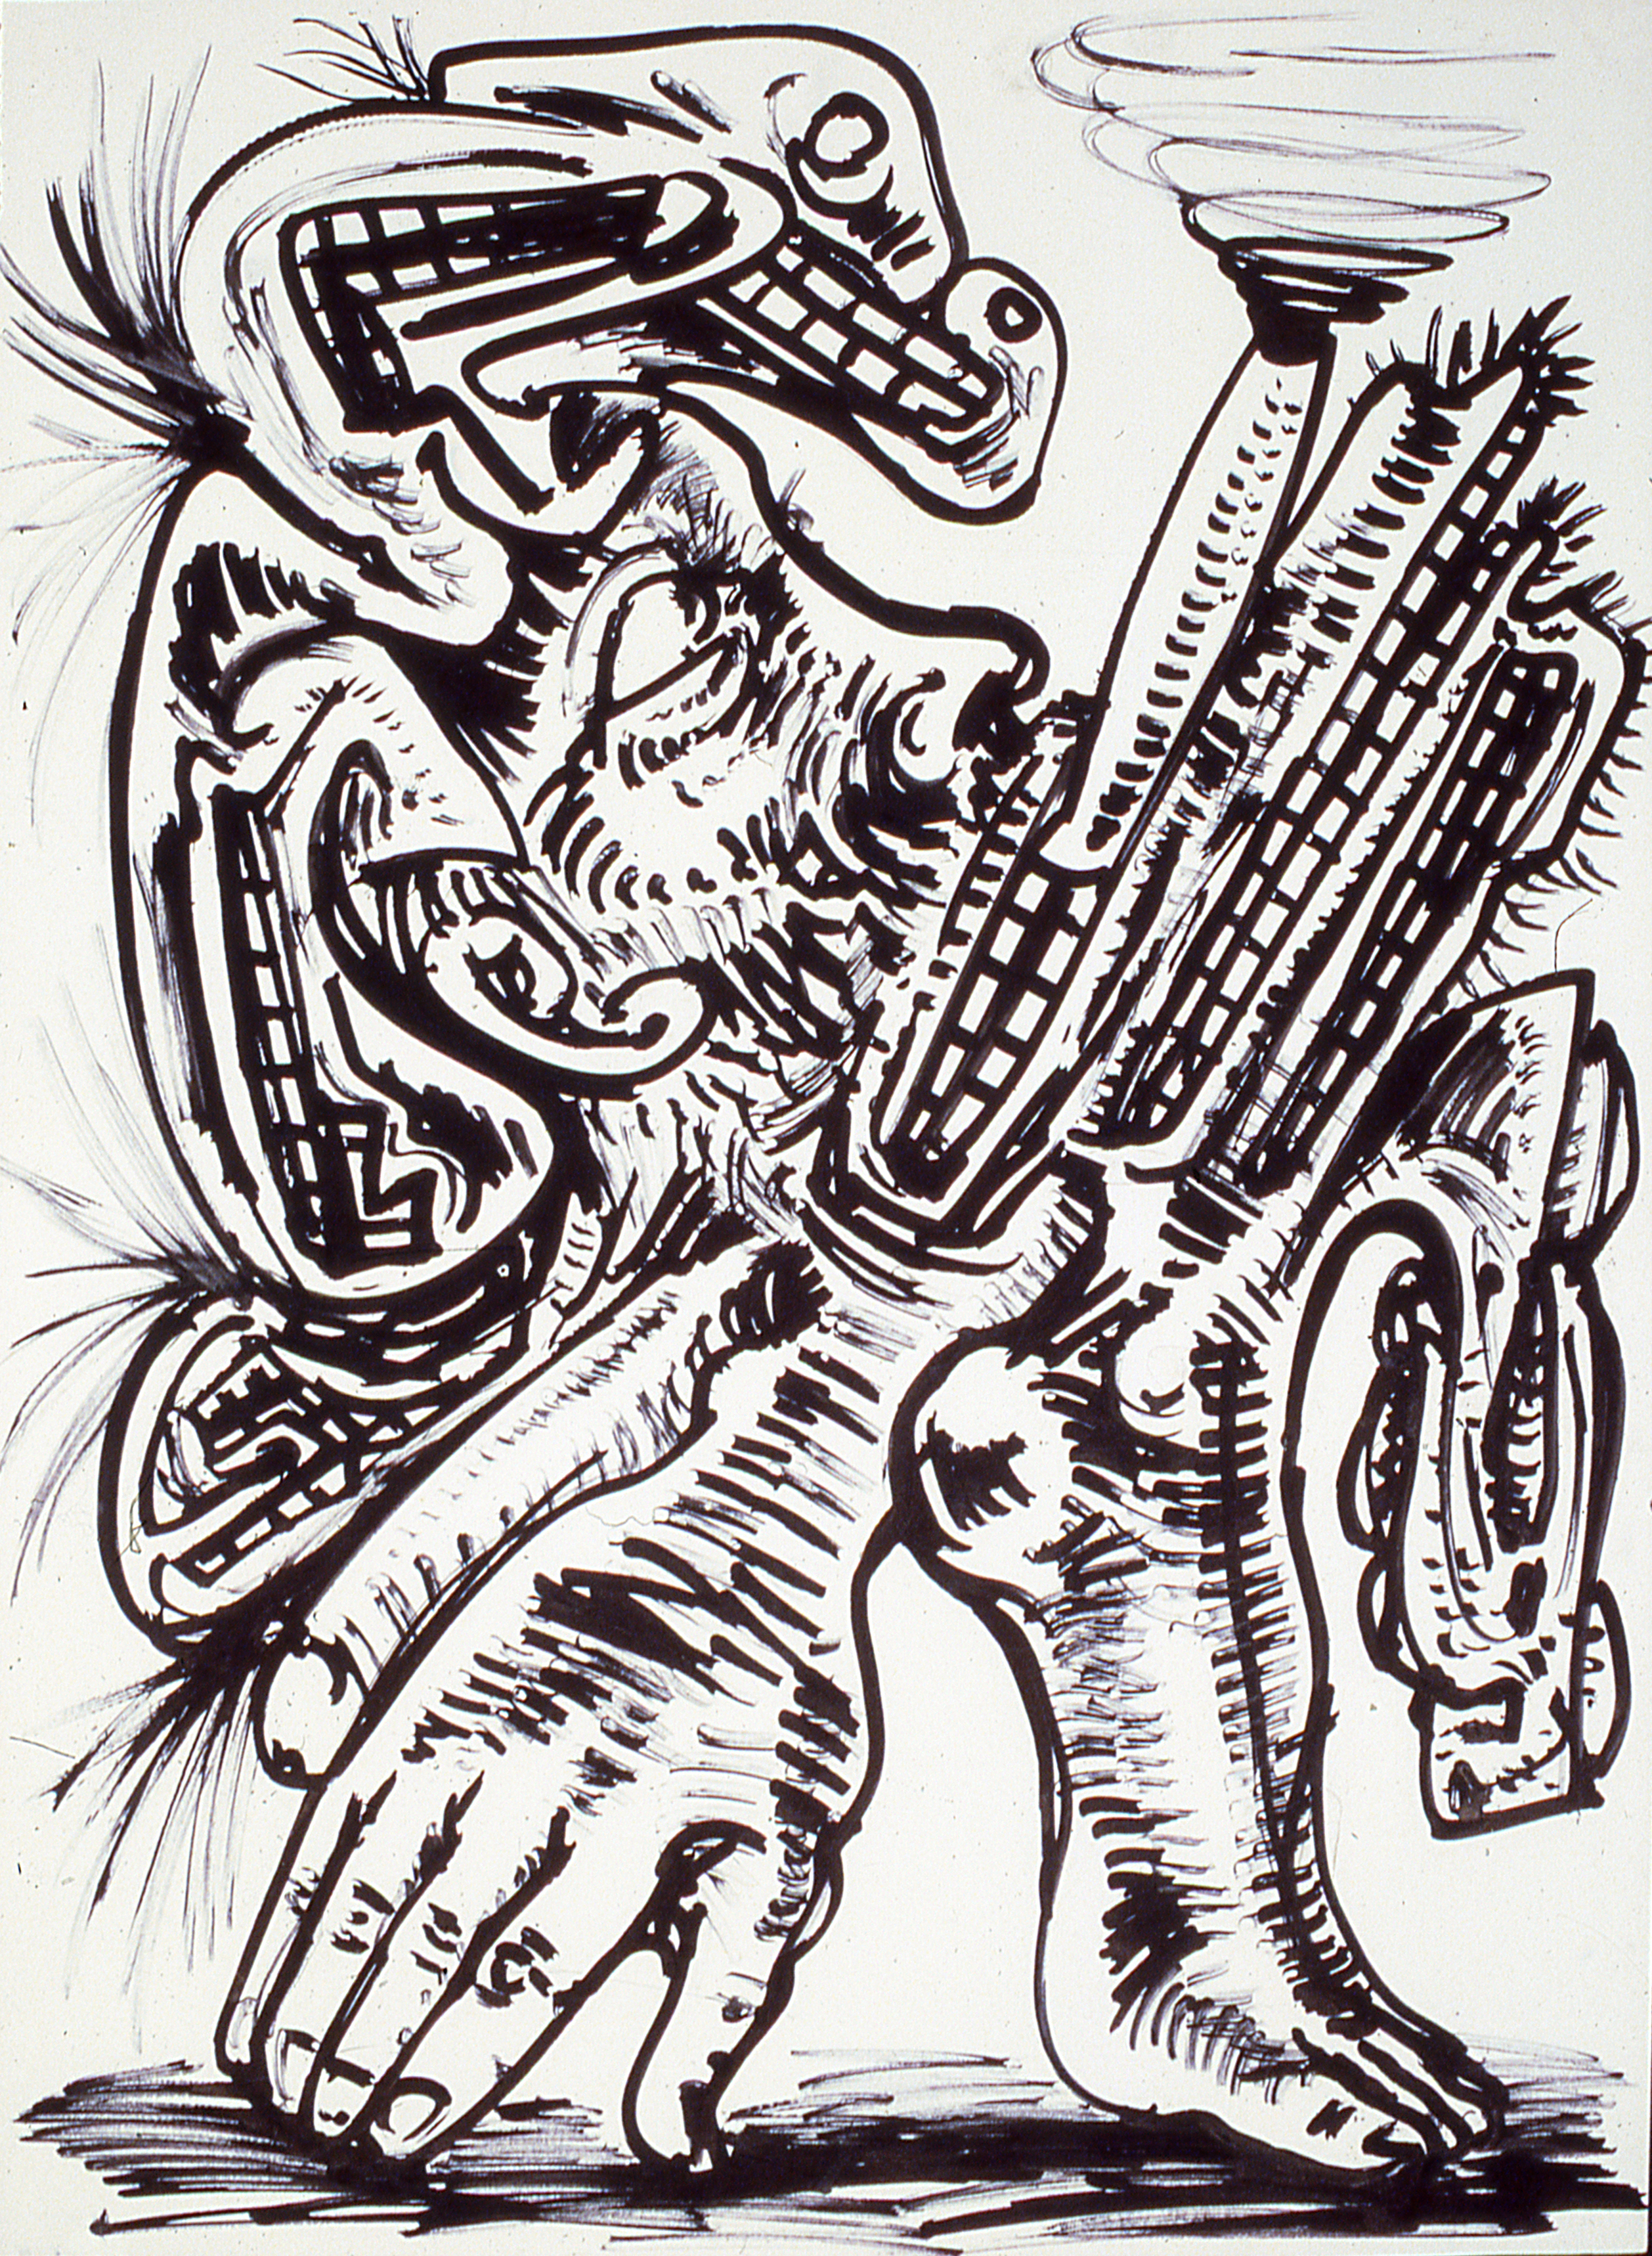 Smoker 1 / Ink on Paper